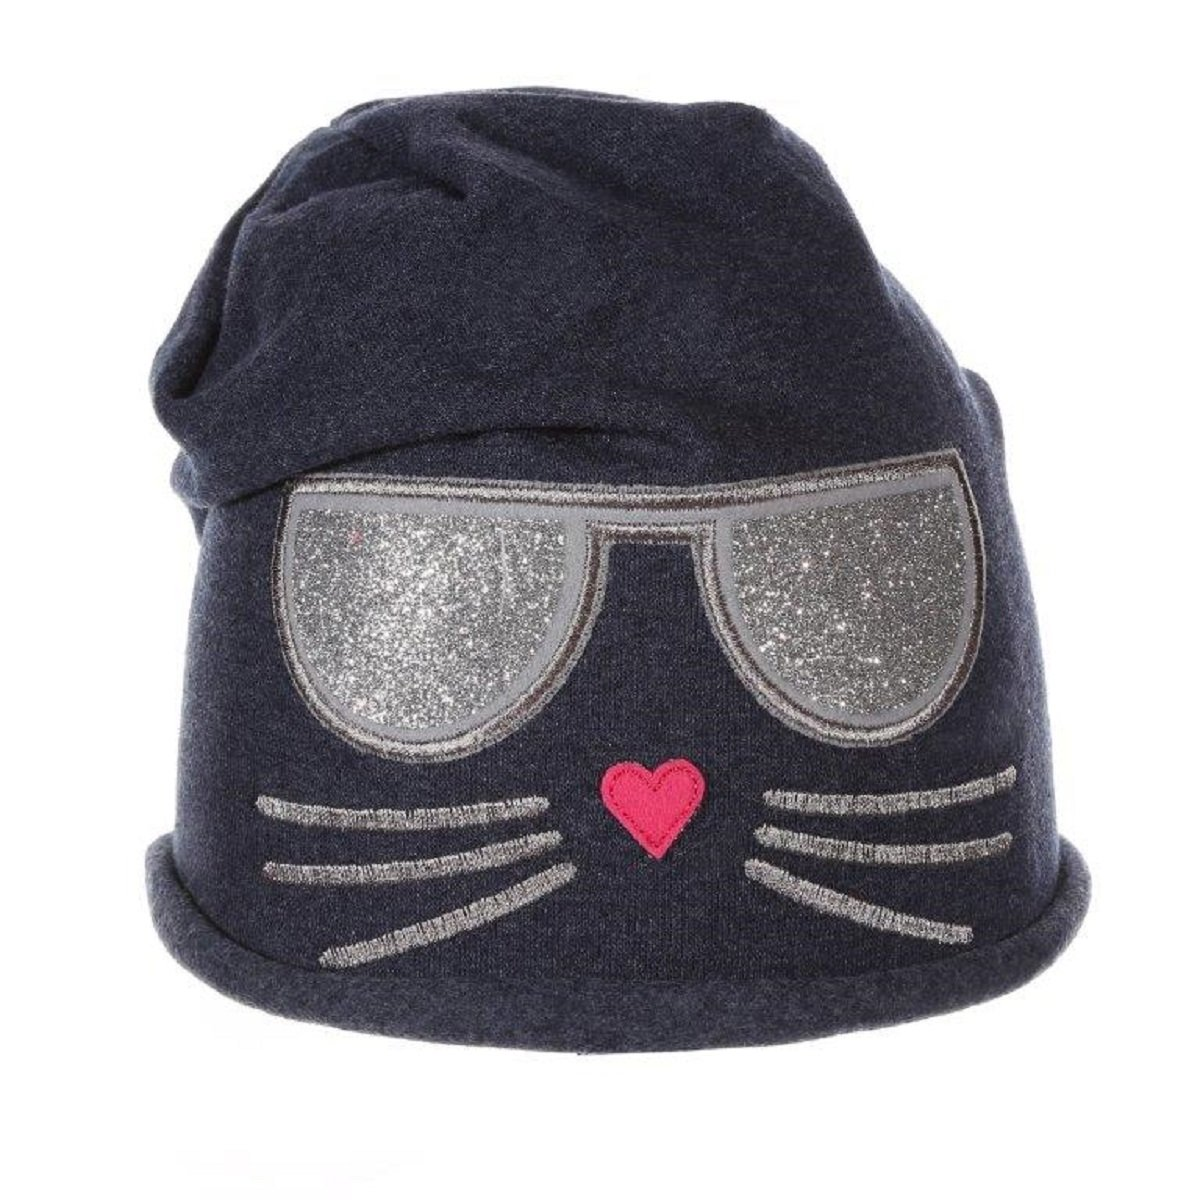 Ande Girls Cotton Set Hat and Scarf Snood Light Tricot Set Size 4-9 Years Grey 2)